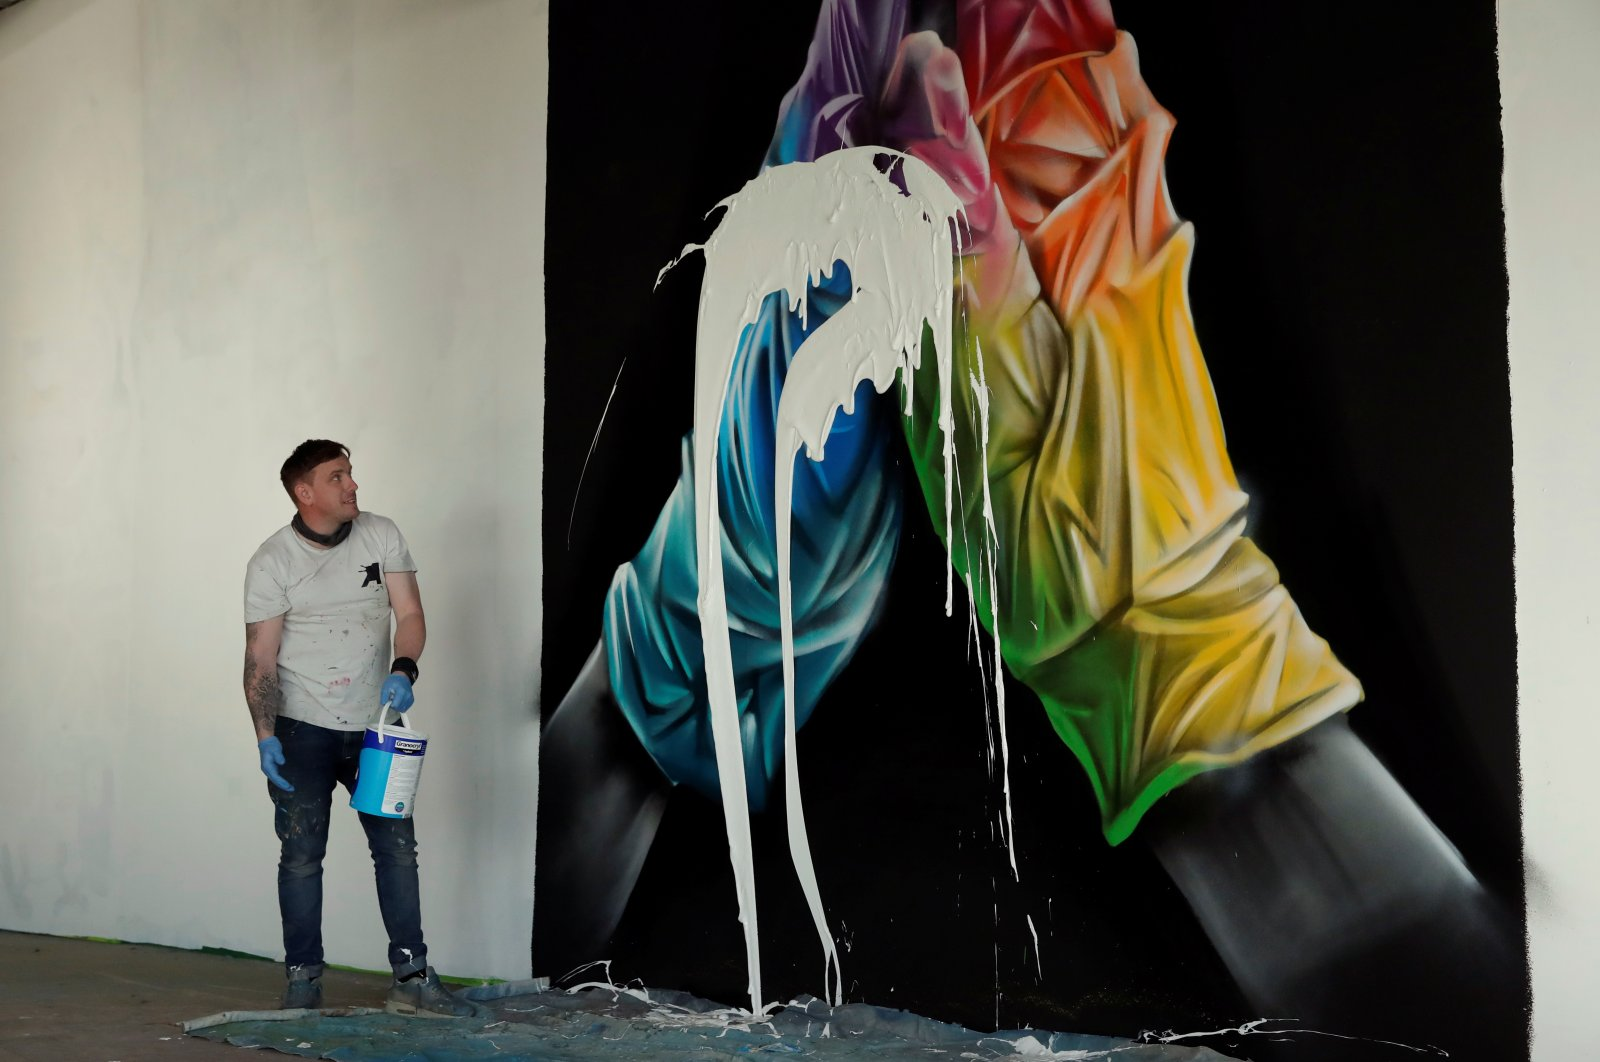 Street artist Nathan Murdoch looks at the artwork with paint splattered over it, as he creates a piece of crypto art to be auctioned with proceeds donated to the NHS in Peterborough, Britain, April 15, 2021. (Reuters Photo)